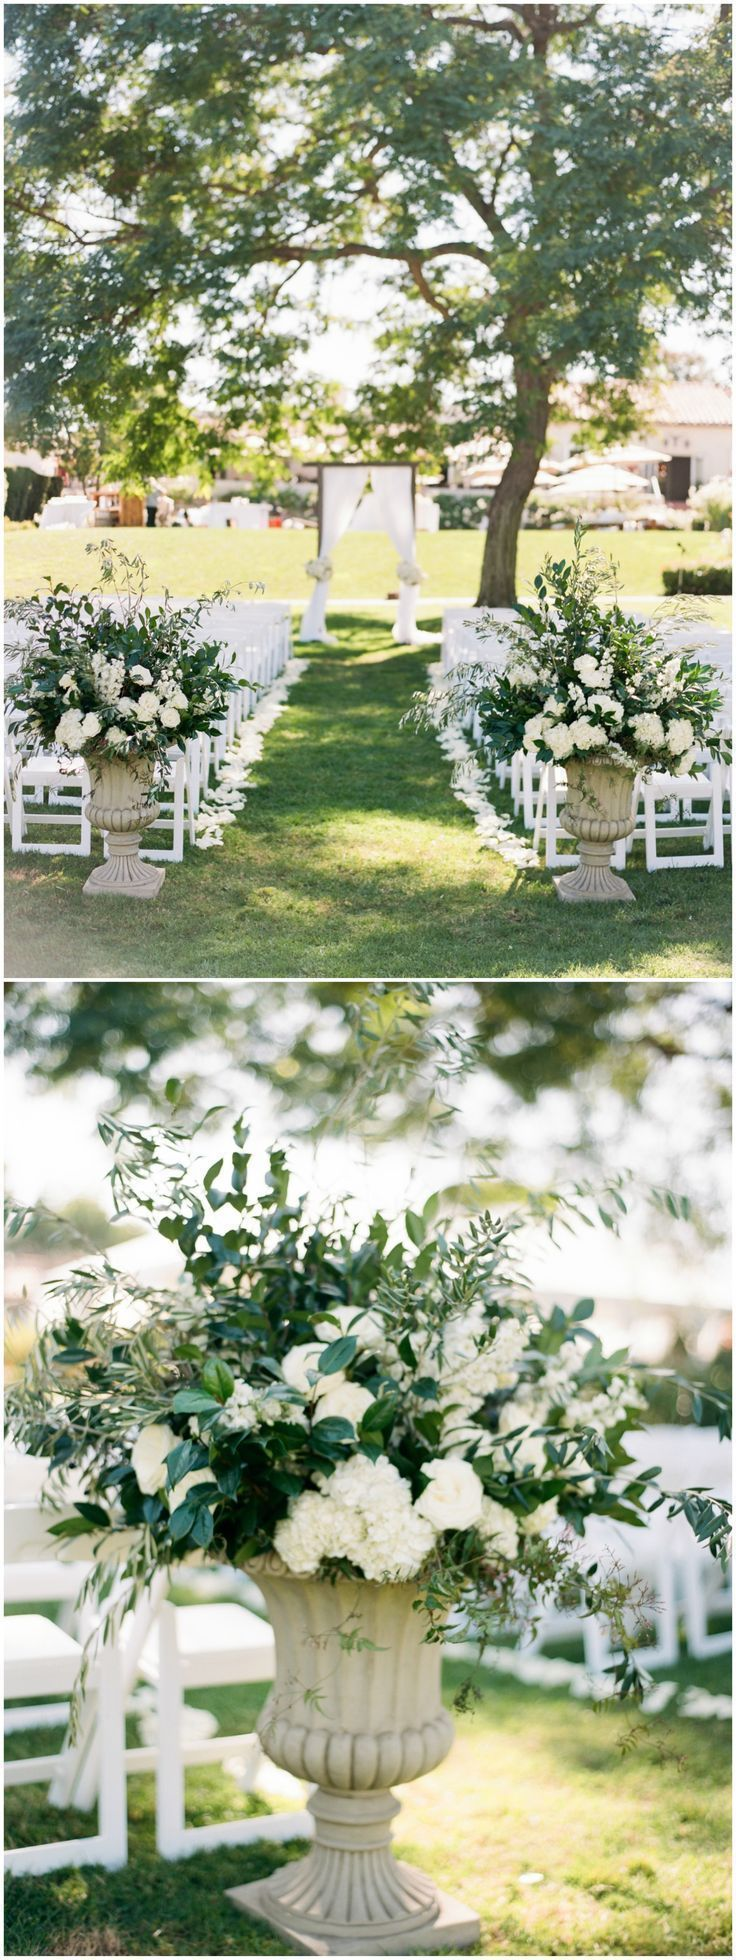 Outdoor wedding ceremony decor, large white floral arrangements, romantic, flowers flanking the aisle // Bryan N. Miller Photography #weddingflowerarrangements #outdoorweddingphotography #romanticweddings #outdoorweddingceremony #weddingdecorationsromantic #weddingphotography